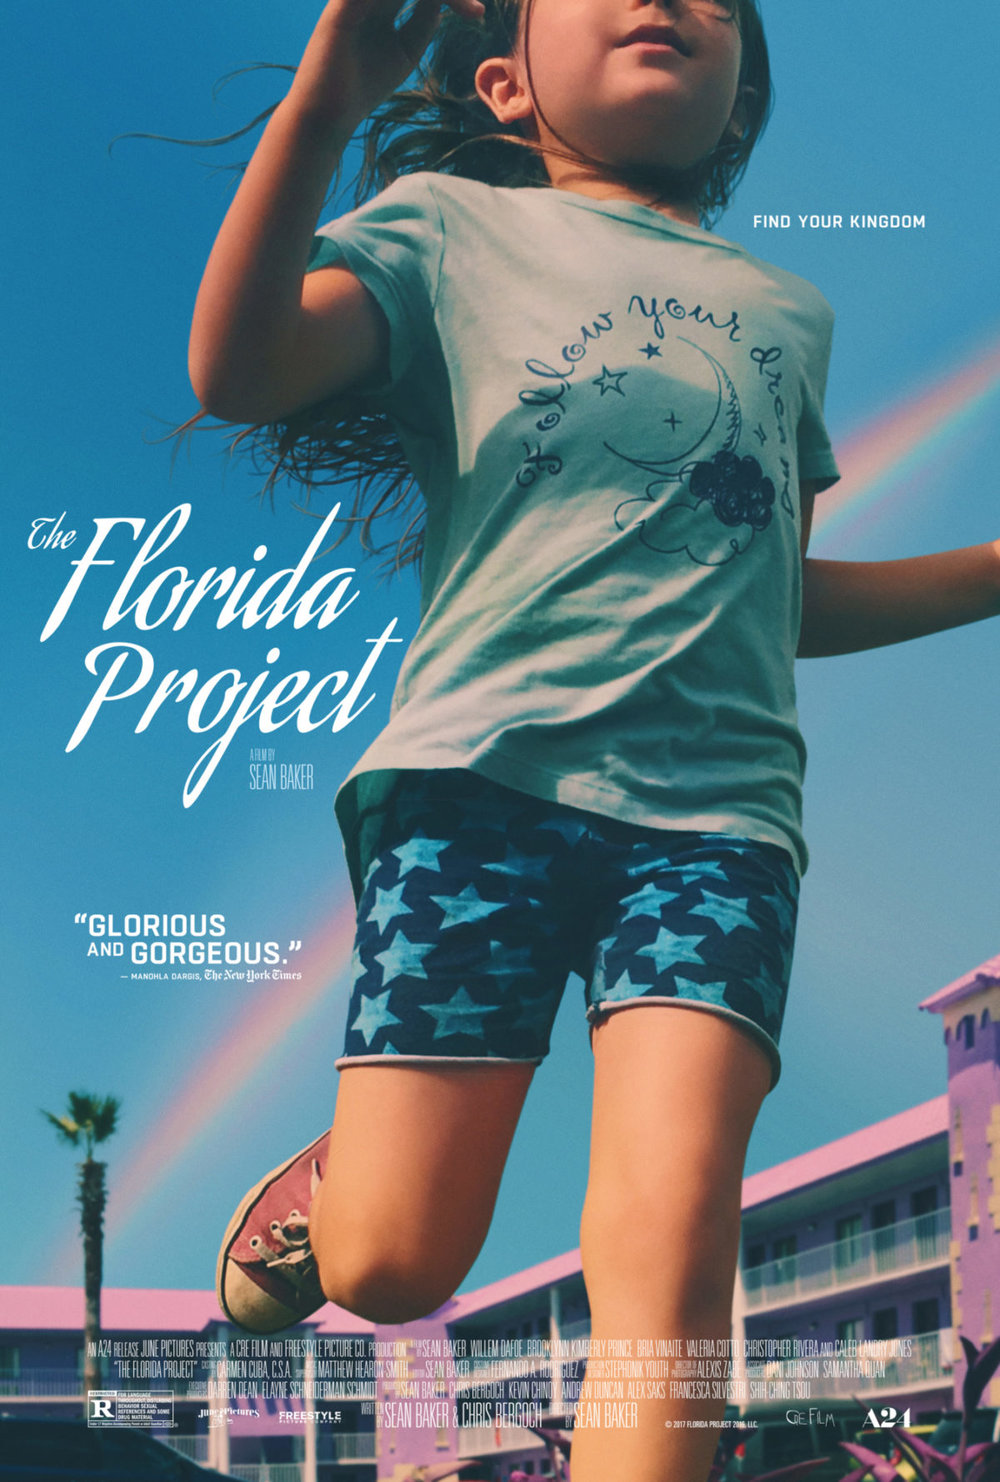 The FLorida Project_2.jpg